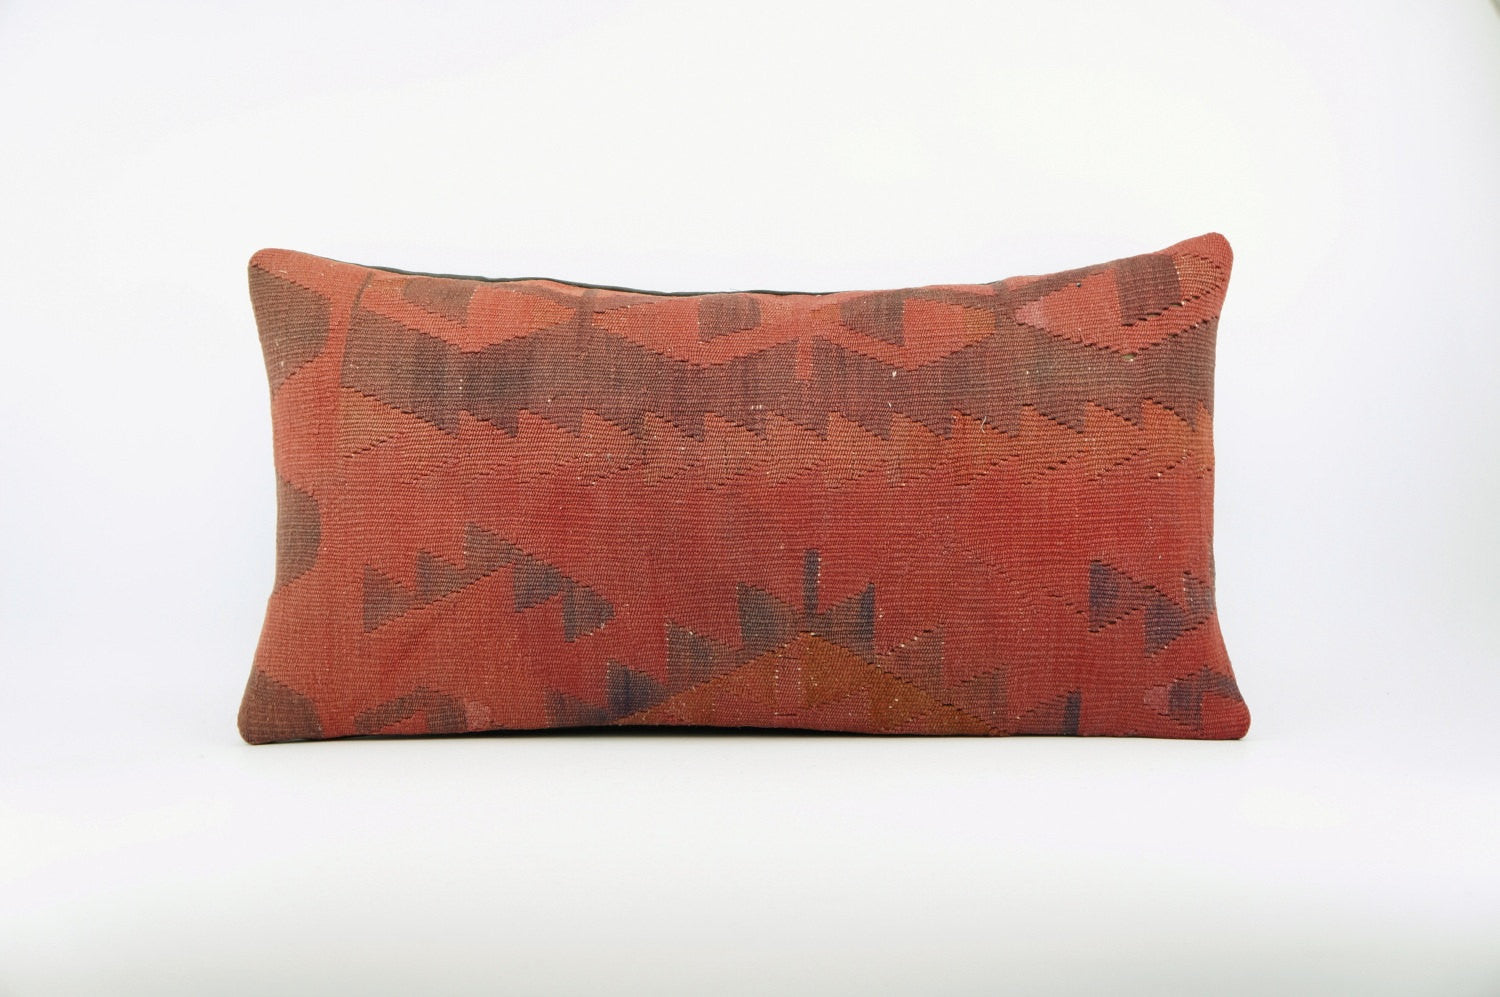 12x24  Geometric chevron kilim pillow sham, Tribal cushion cover, Handwoven pillowcase , mid century decor red 1660